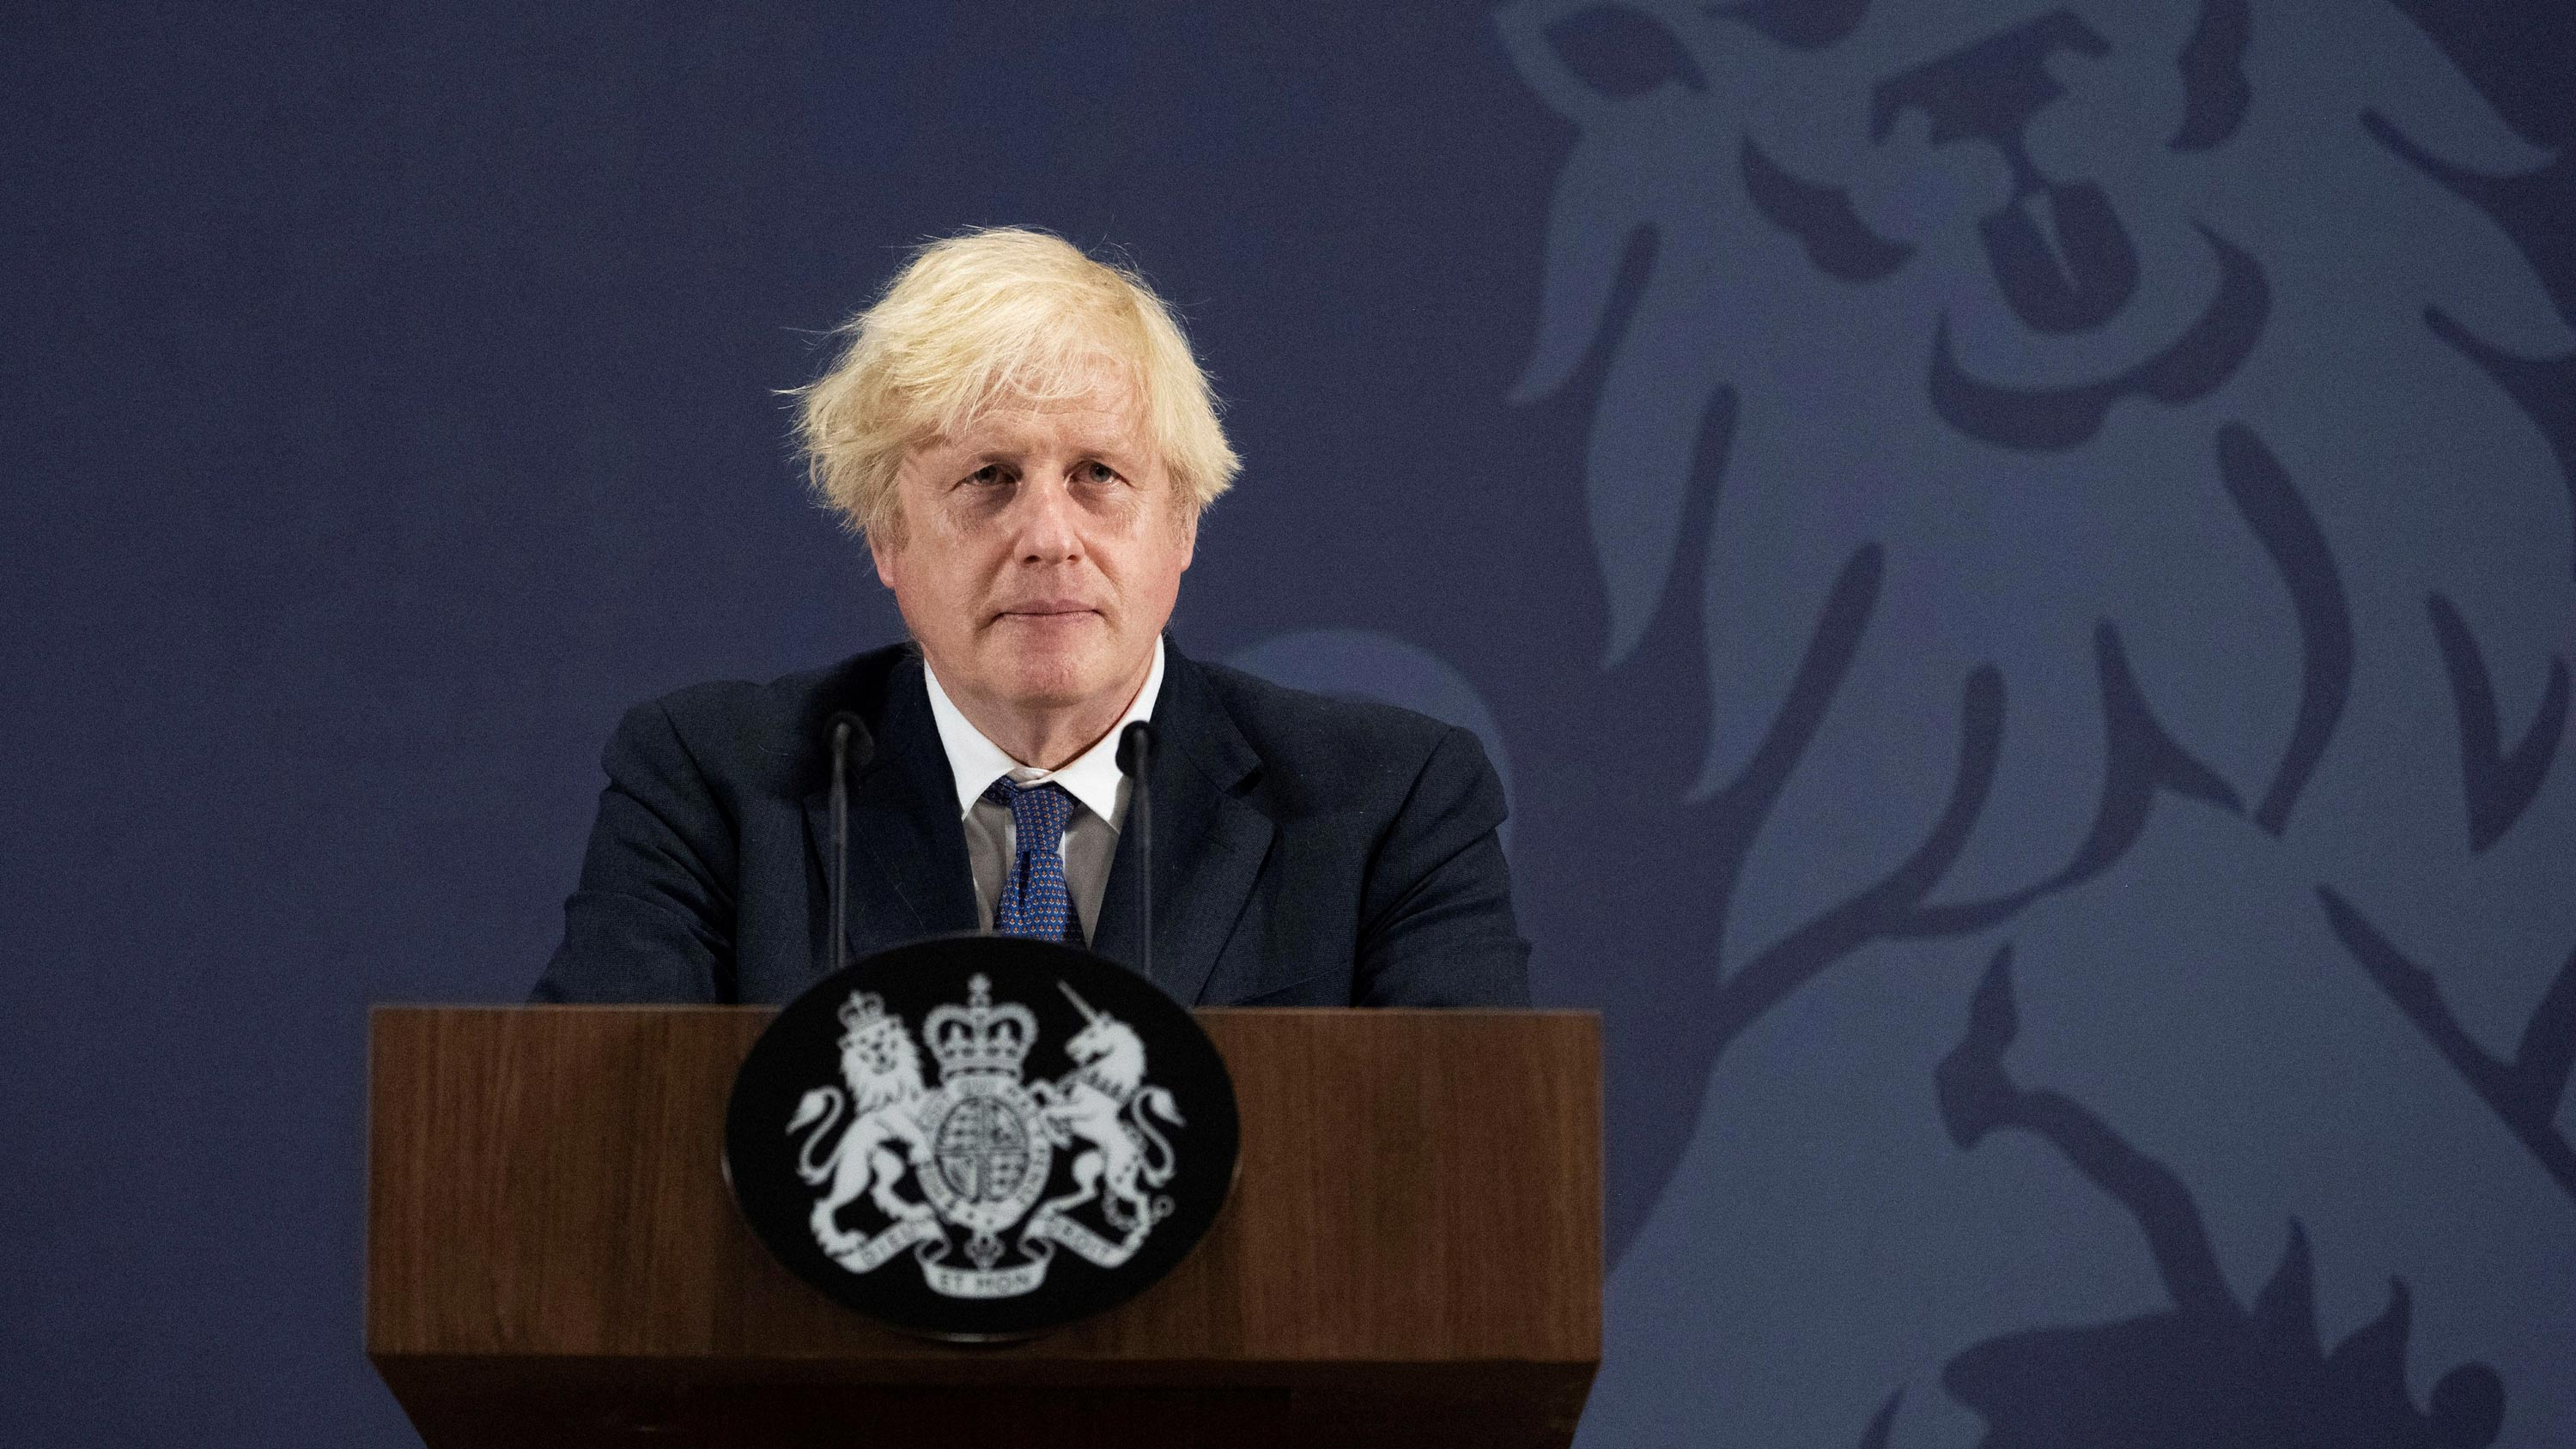 UK Prime Minister Boris Johnson speaks during a visit to the UK Battery Industrialisation Centre in Coventry, England, on July 15.